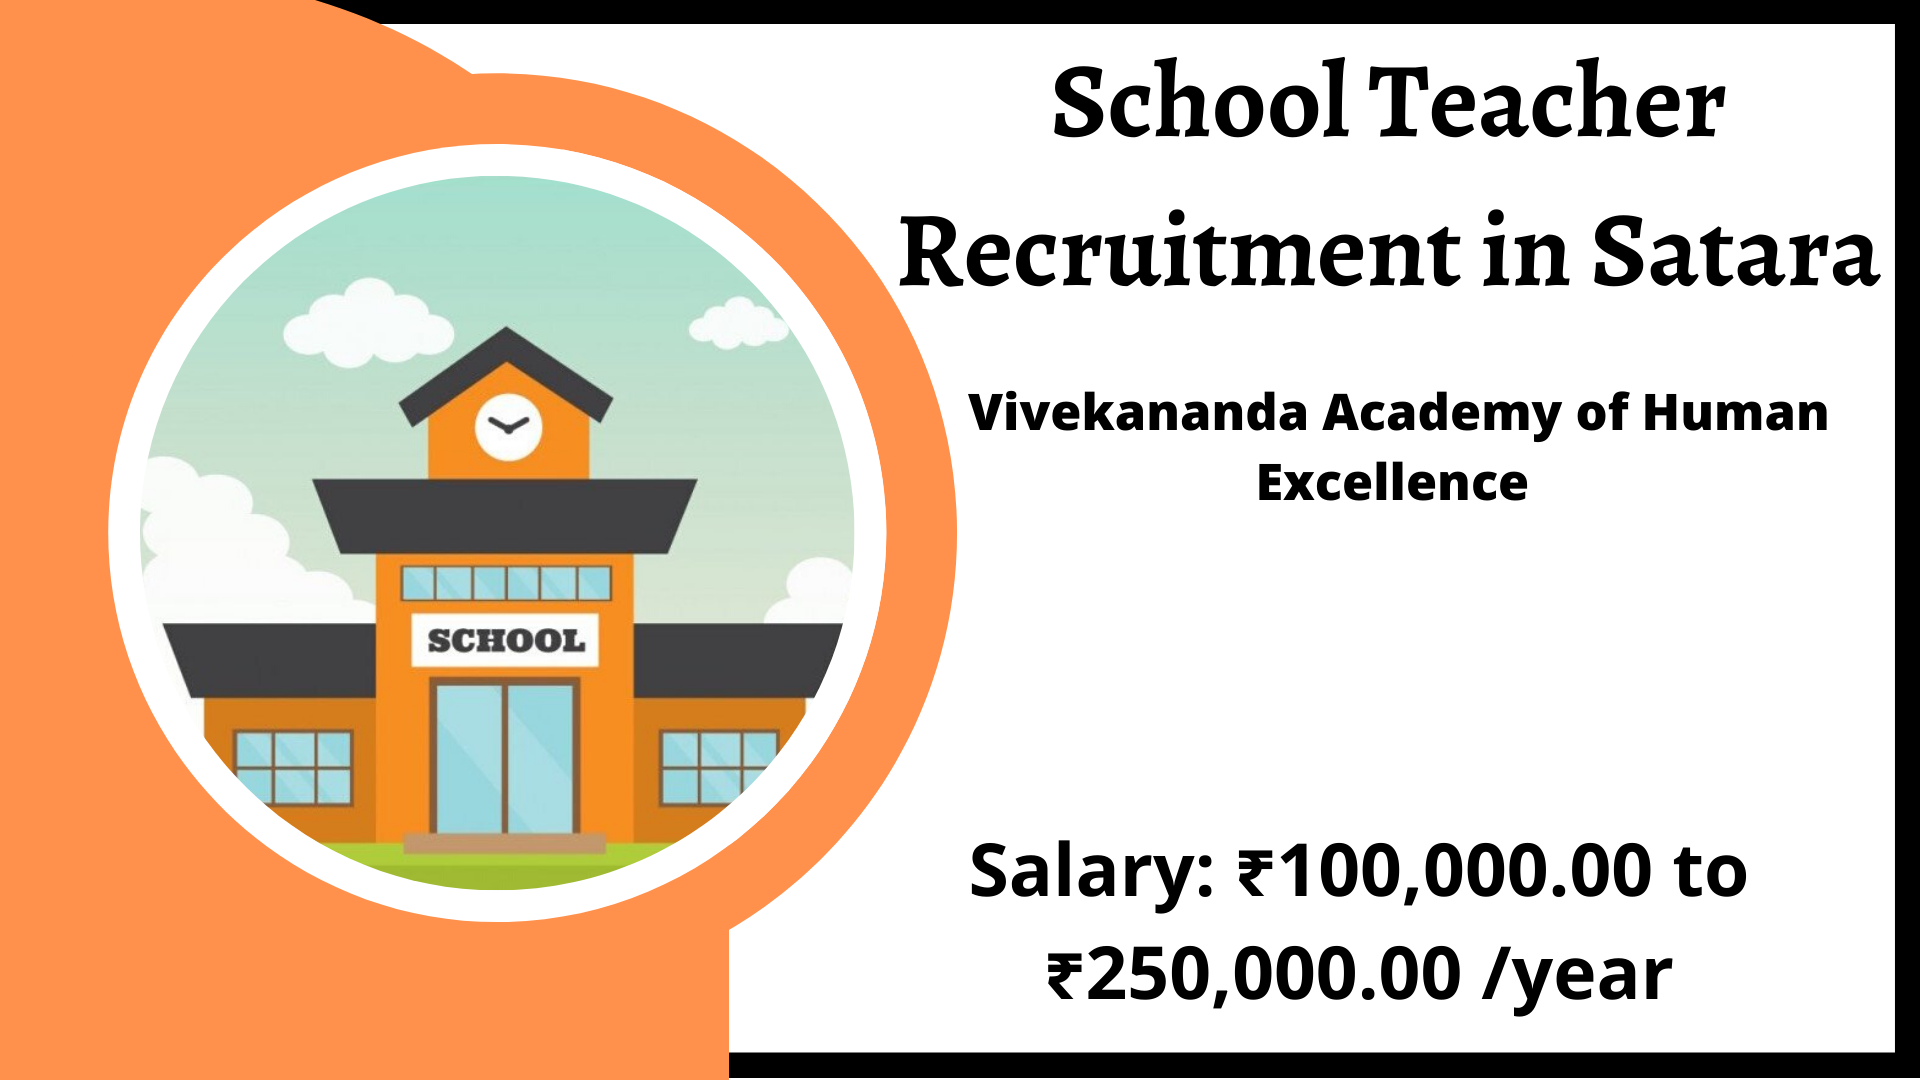 School Teacher Recruitment in Satara Jobs in Satara